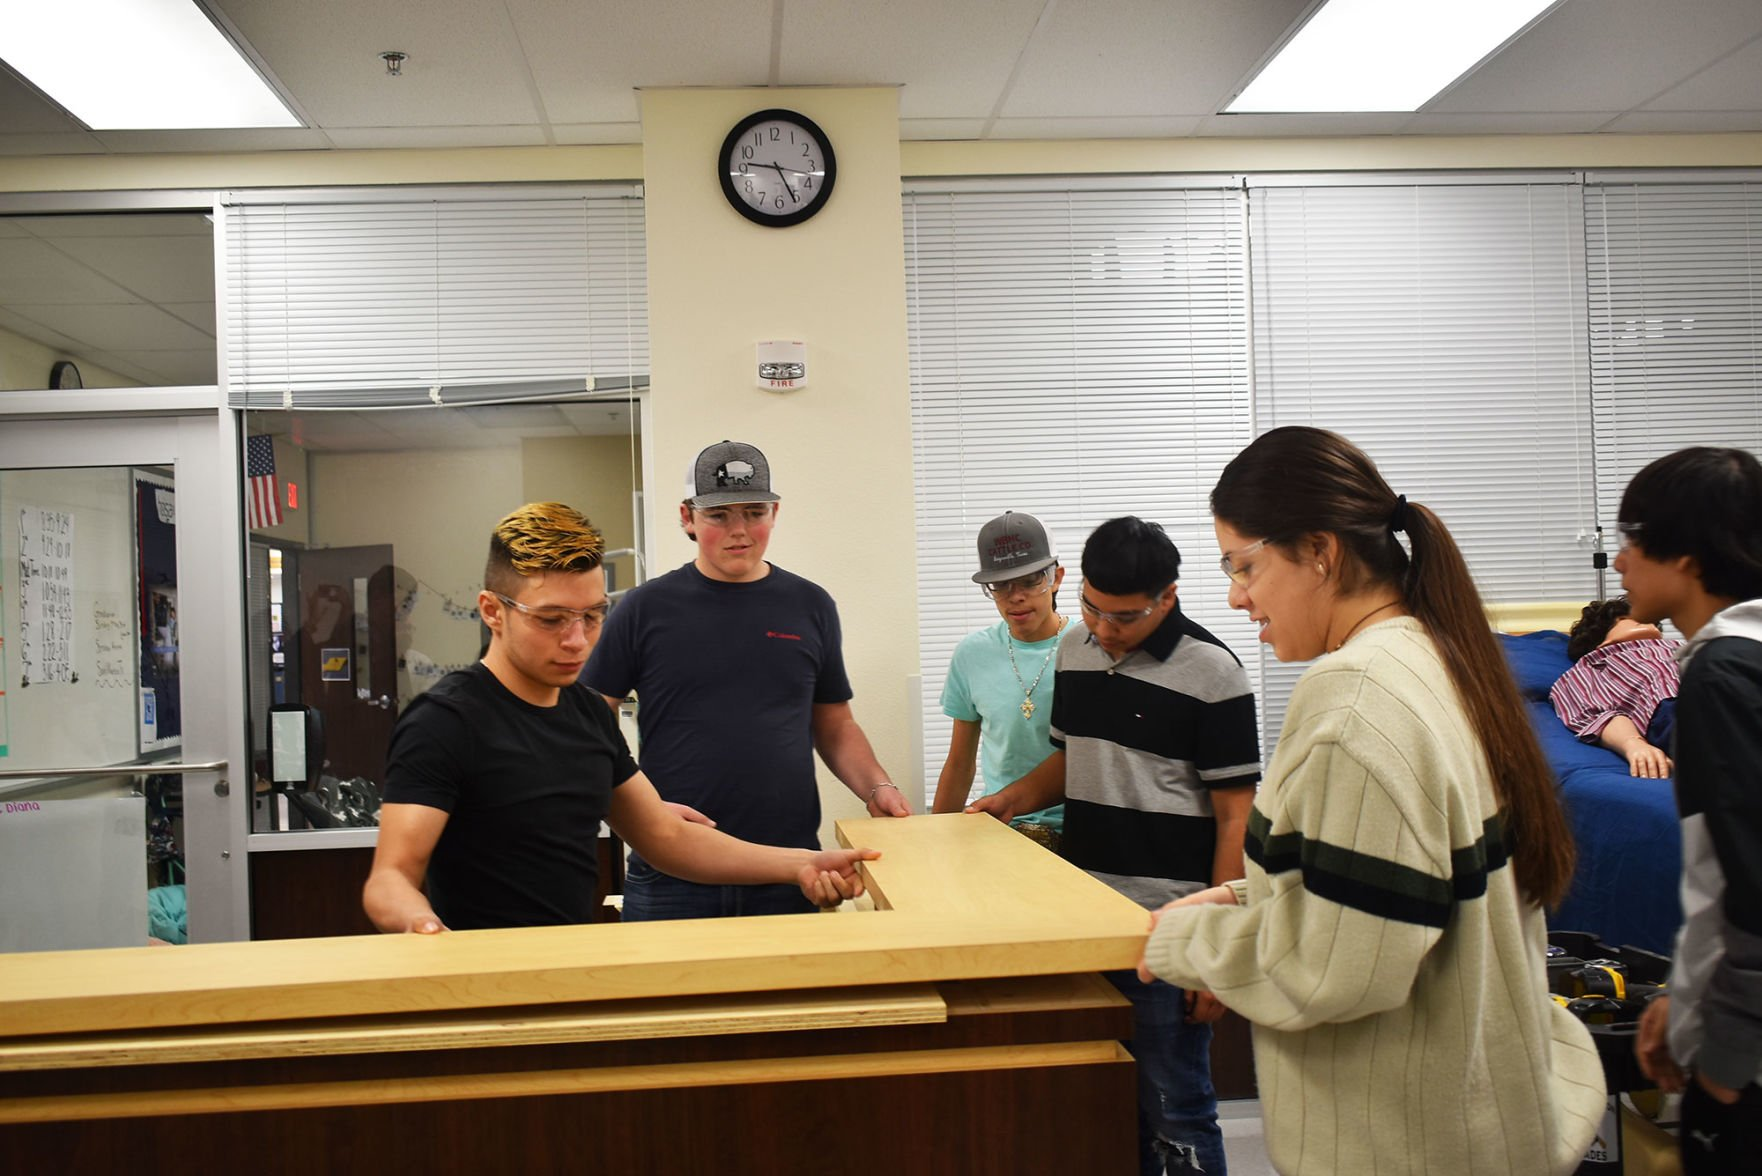 Students learn to build beyond classroom